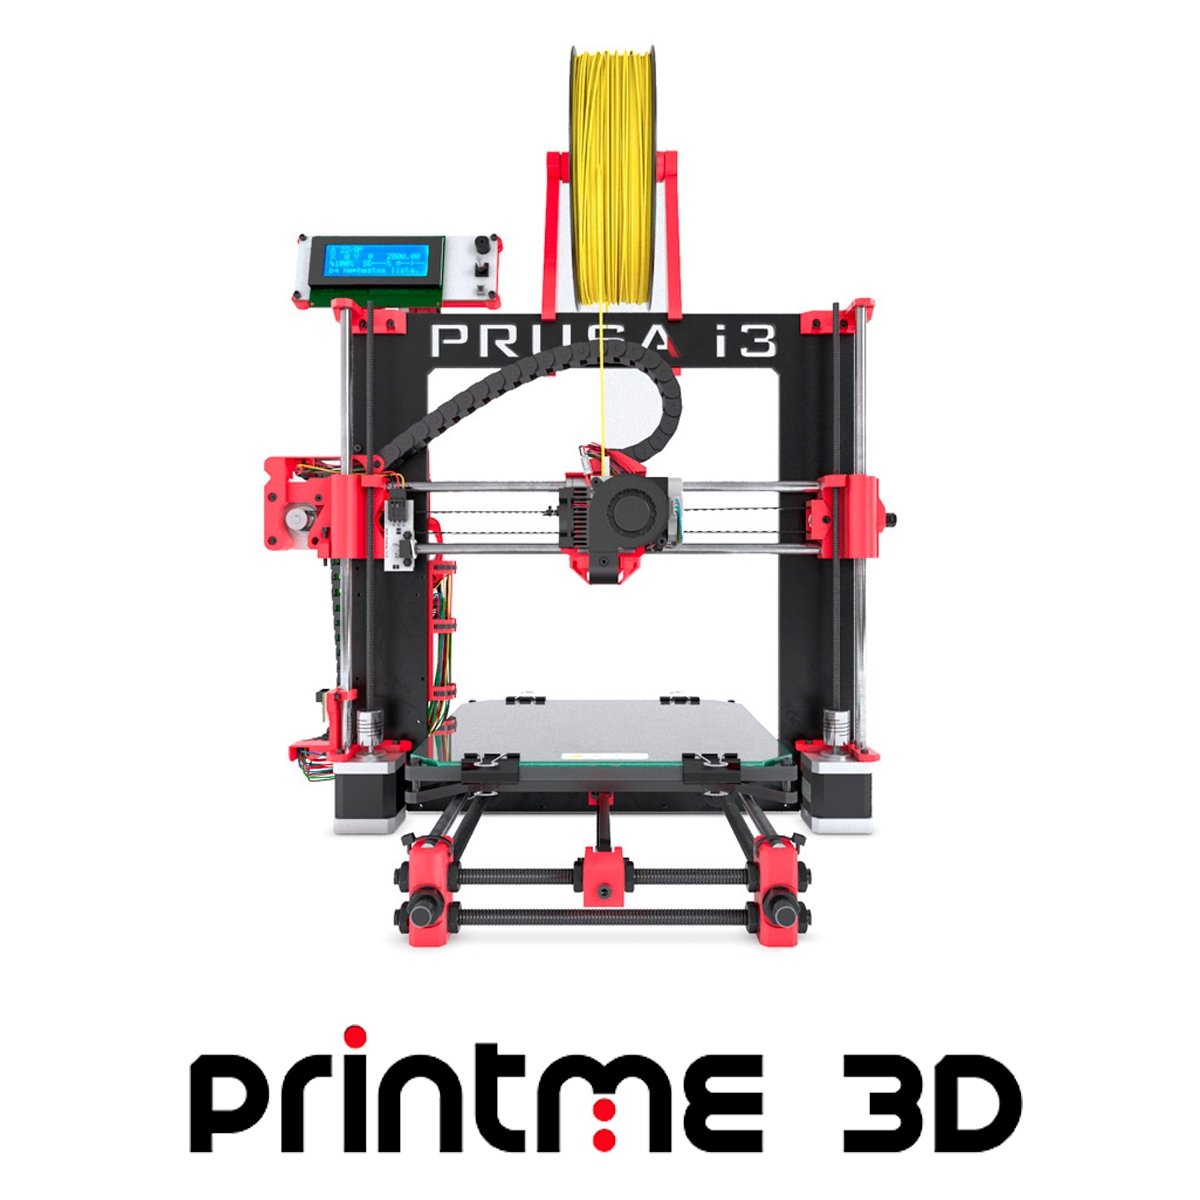 PrintME 3D - BQ - Prusa i3 - KIT 3D Printer: Amazon.es: Electrónica